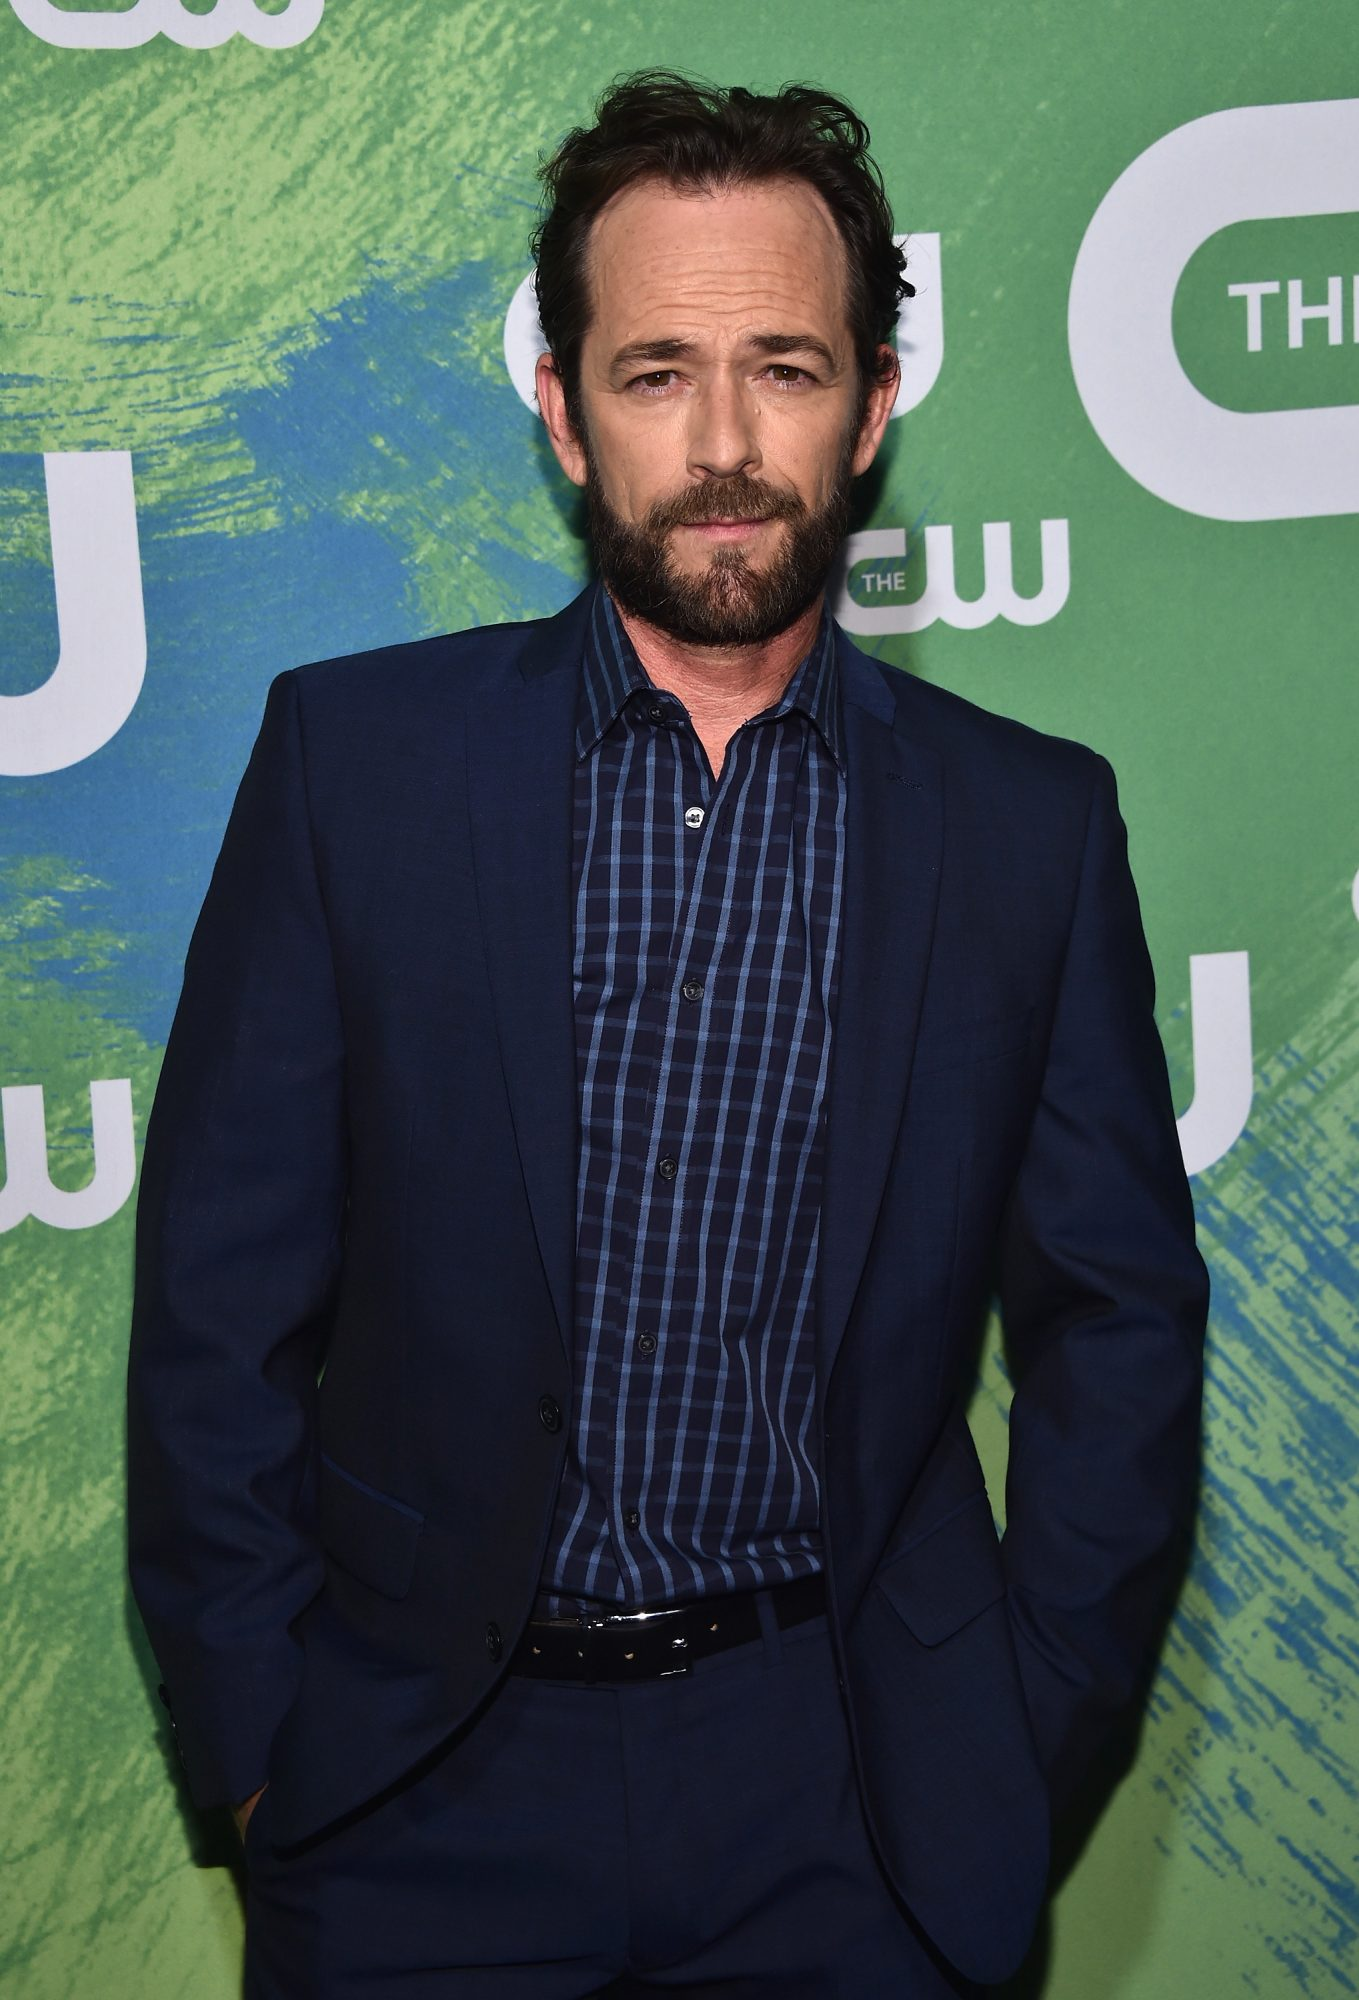 Luke Perry's Death Has People Wondering: What Causes a Massive Stroke at a Young Age, Anyway?